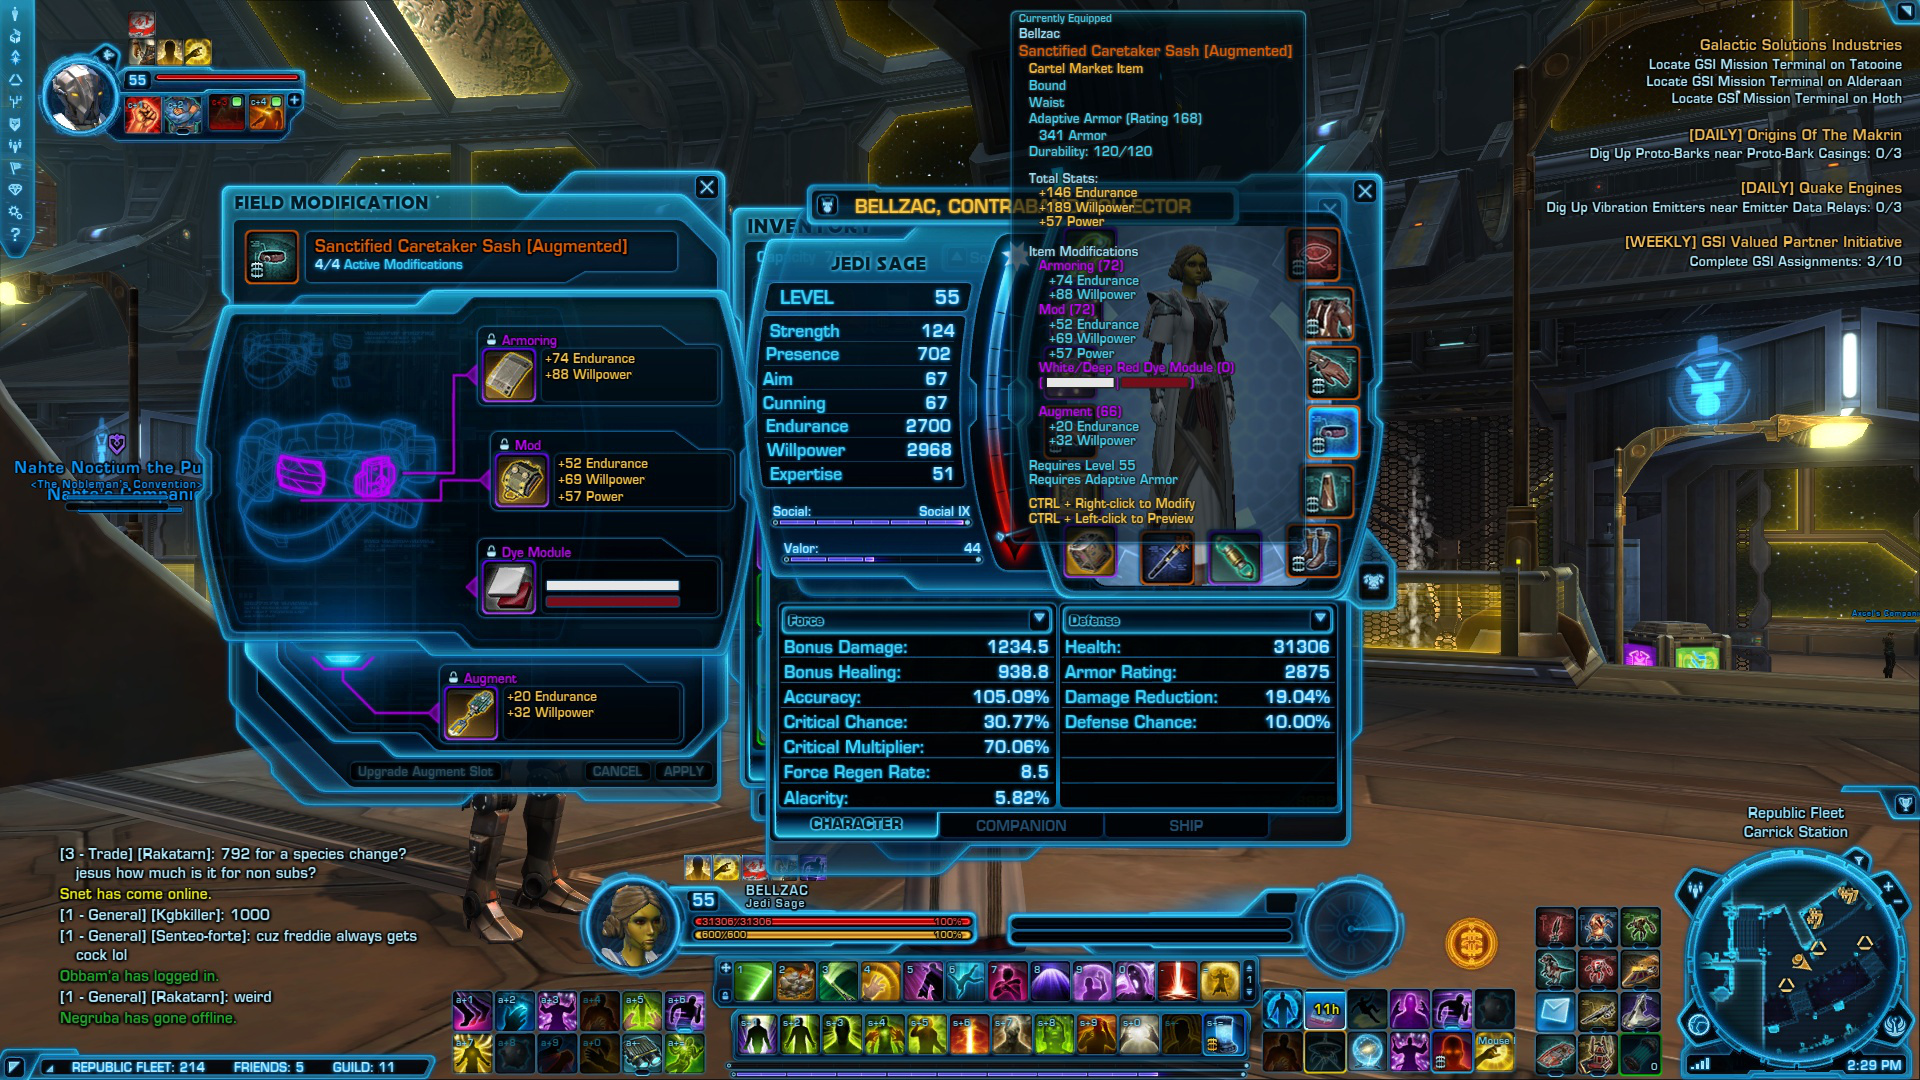 SWTOR Game Update 2.1 - Dye Modules Location on swtor companion gifts, swtor schematics guide, swtor get rich, swtor hk-51 customization, swtor sith warrior, swtor skill diagram, swtor jedi consular,